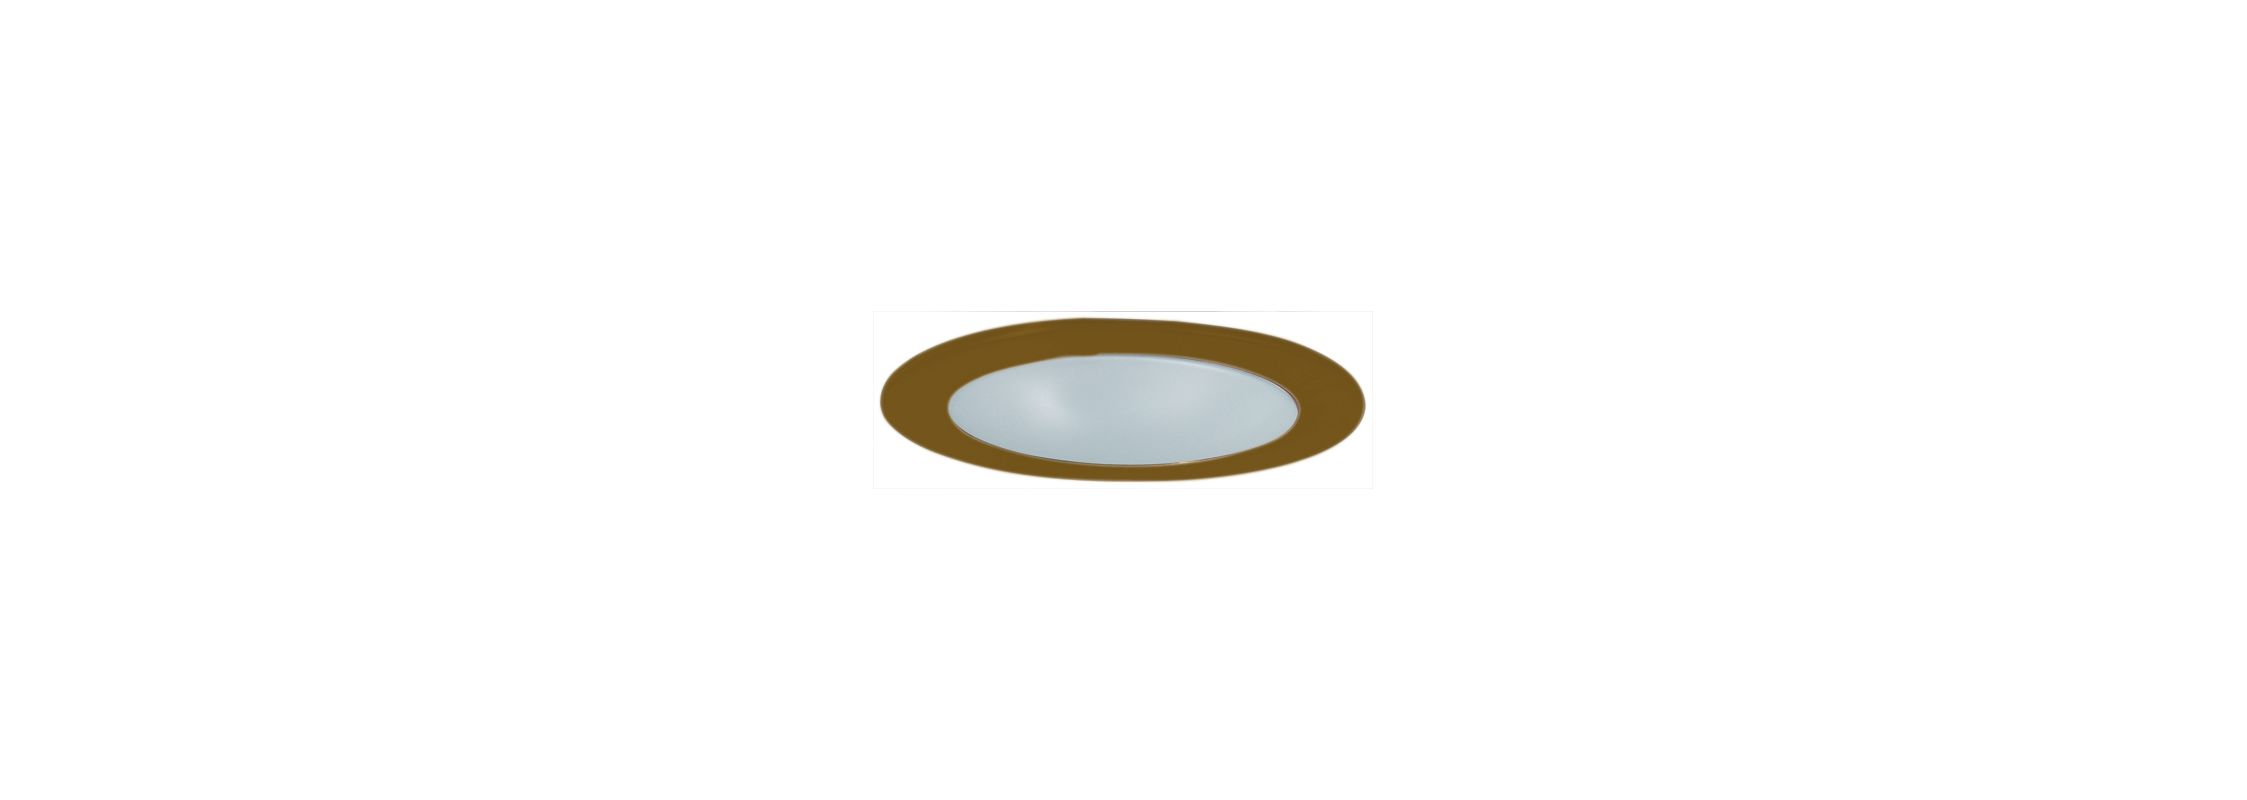 "Elco EL9112 4"" CFL Shower Trim with Frosted Lens and Reflector Bronze"